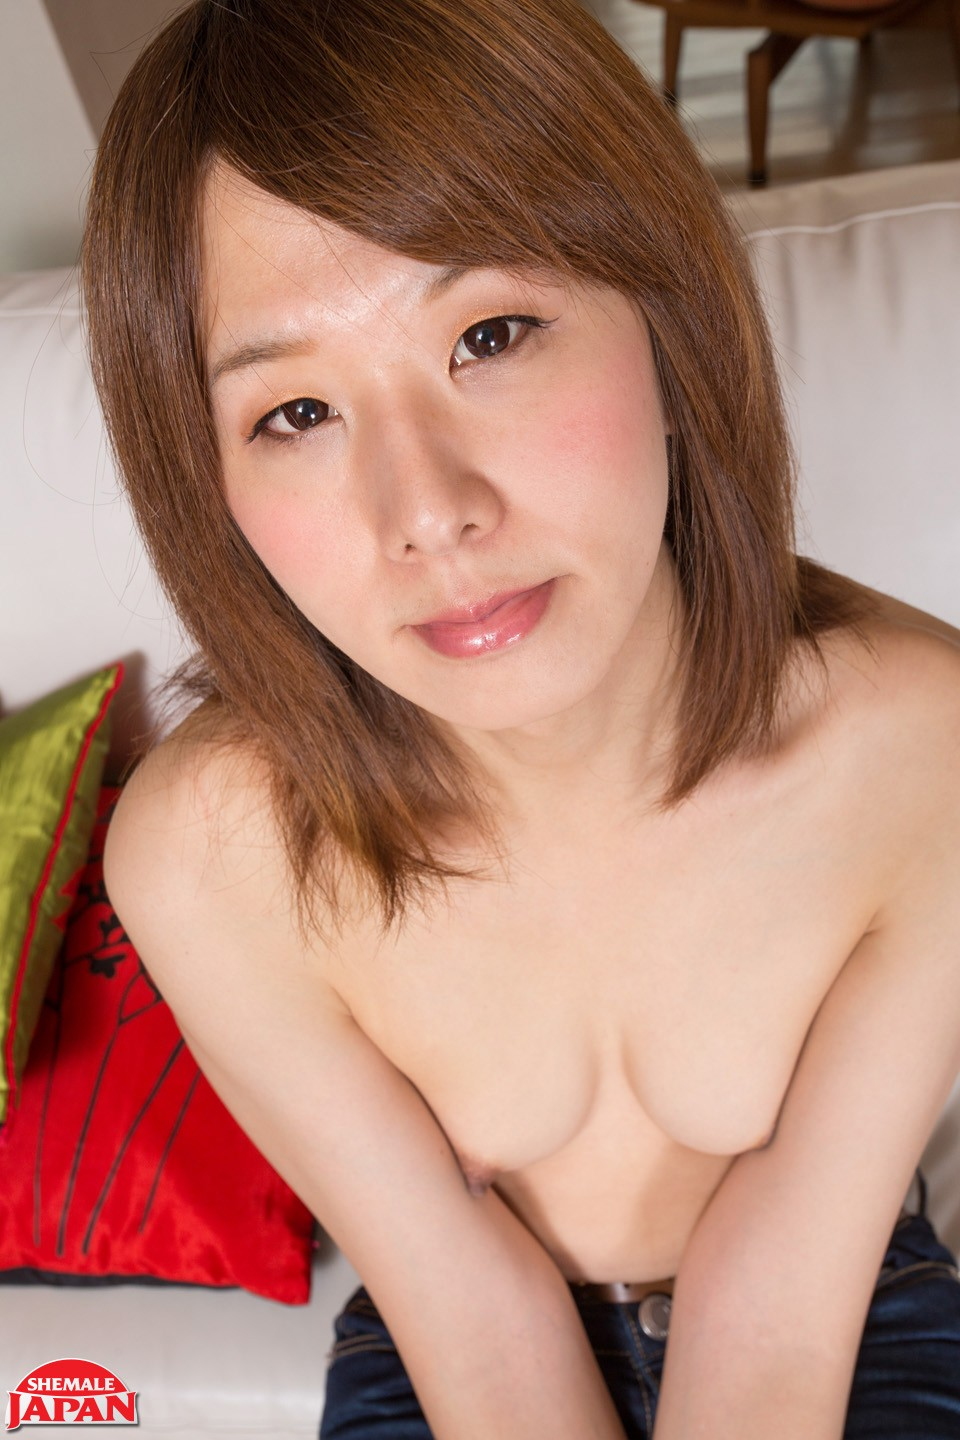 Ain039t she sweet japanese cutie sloppy seconds amp thirds 6